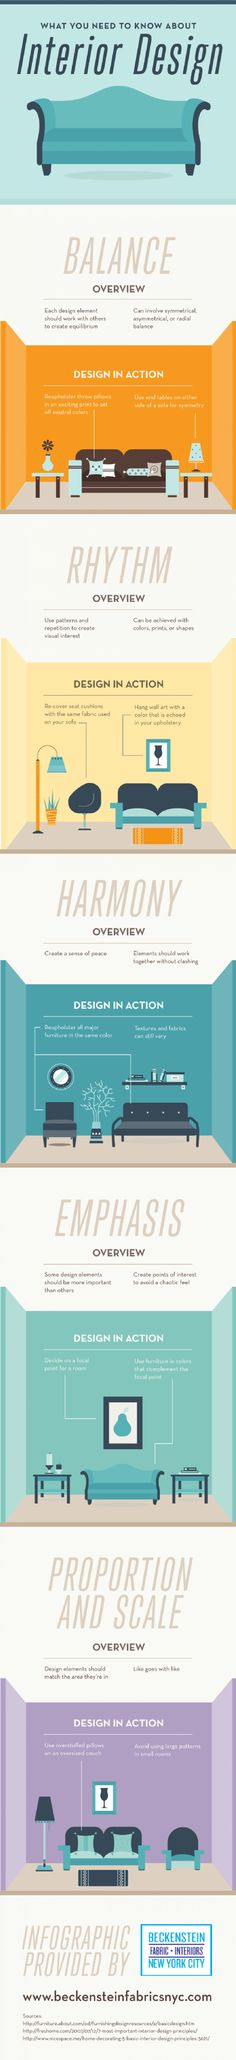 Here is another useful inforgraphic which succinctly round up 5 pointers which the homeowners need to know when it comes to home interior design and furnishing. In short; homeowners should look out for:  Read more at: http://www.renonation.sg/blog/125/What-you-need-to-know-about-interior-design.html Copyright © RenoNation.sg